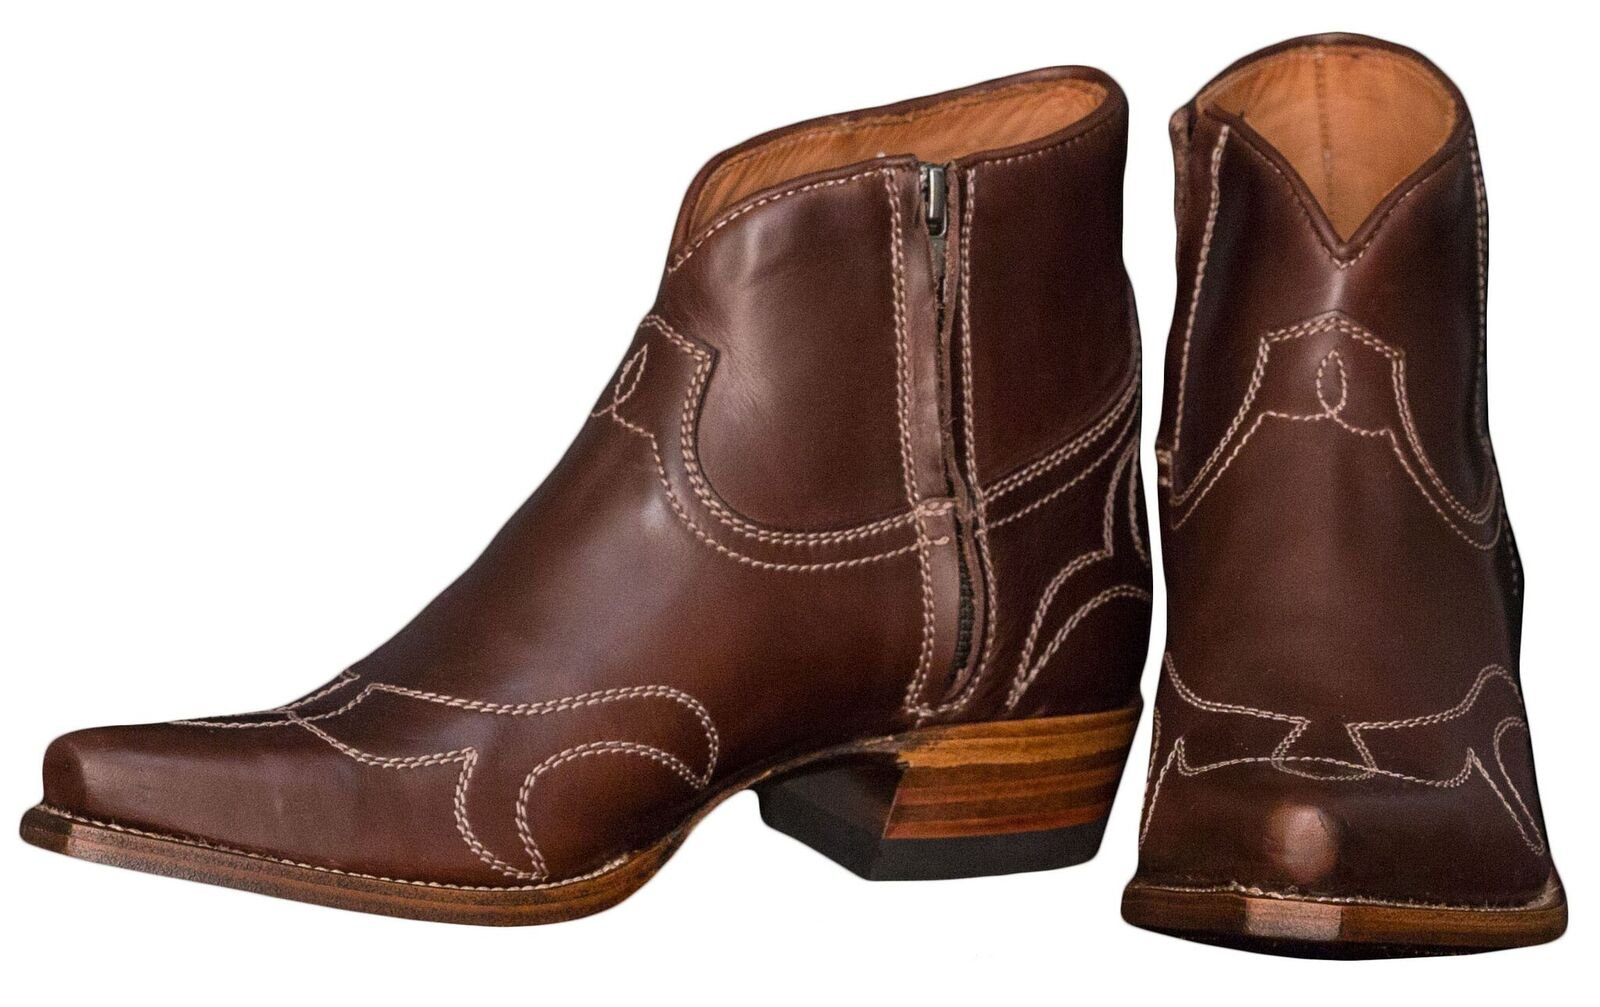 Ranch Road Boots Women's Bell County Short Cowboy Boot Zip Up Bootie Size 6 Brown